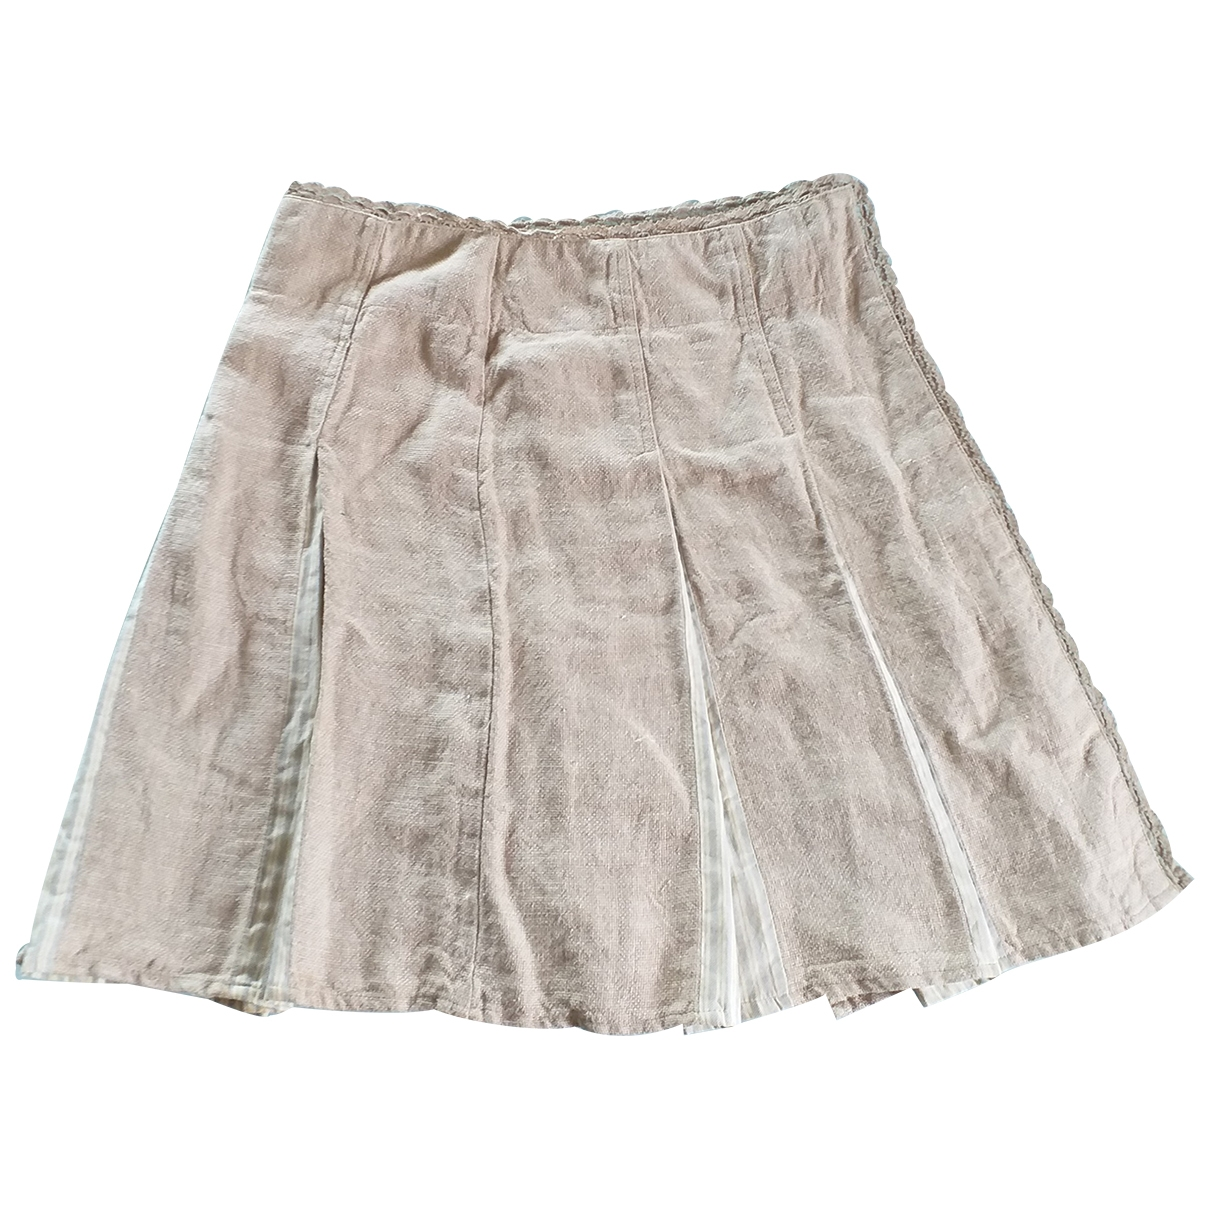 Max & Co \N Multicolour Linen skirt for Women 38 IT